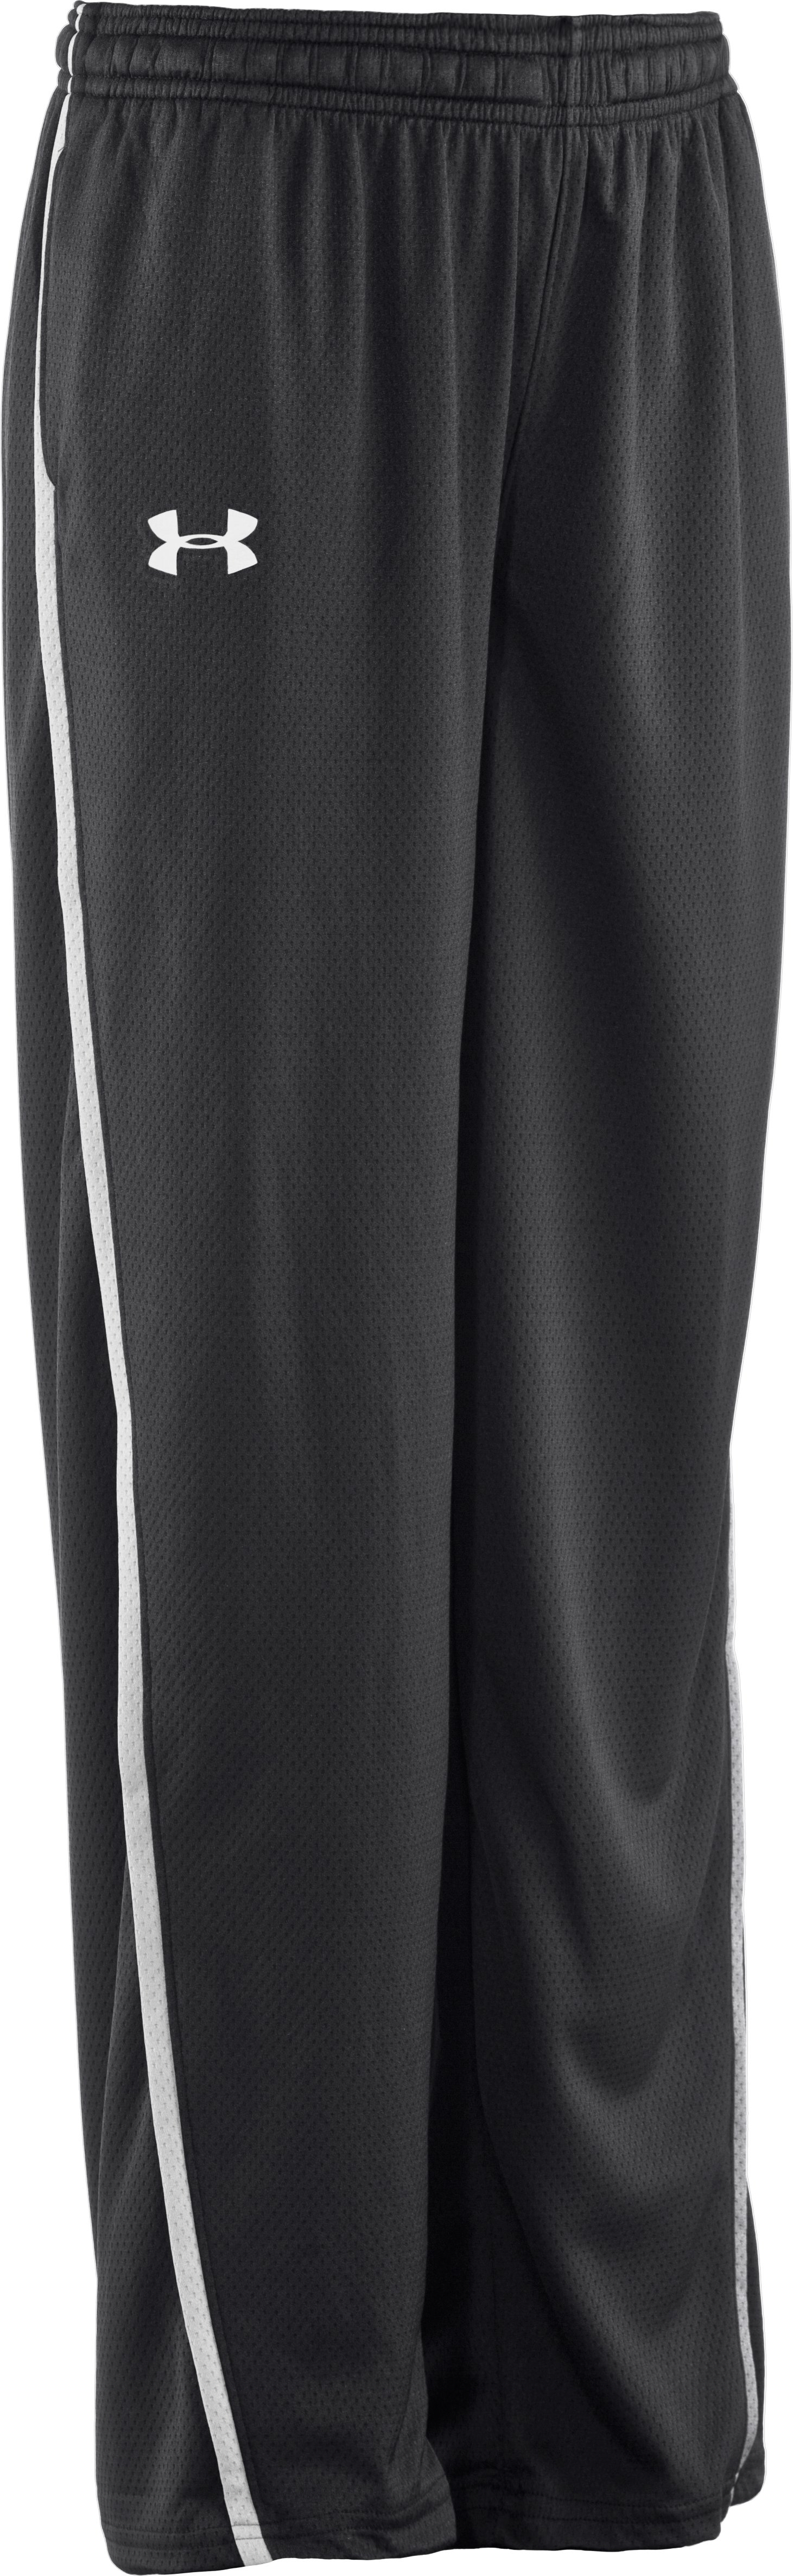 Boys' UA Catalyst Pants, Graphite, zoomed image